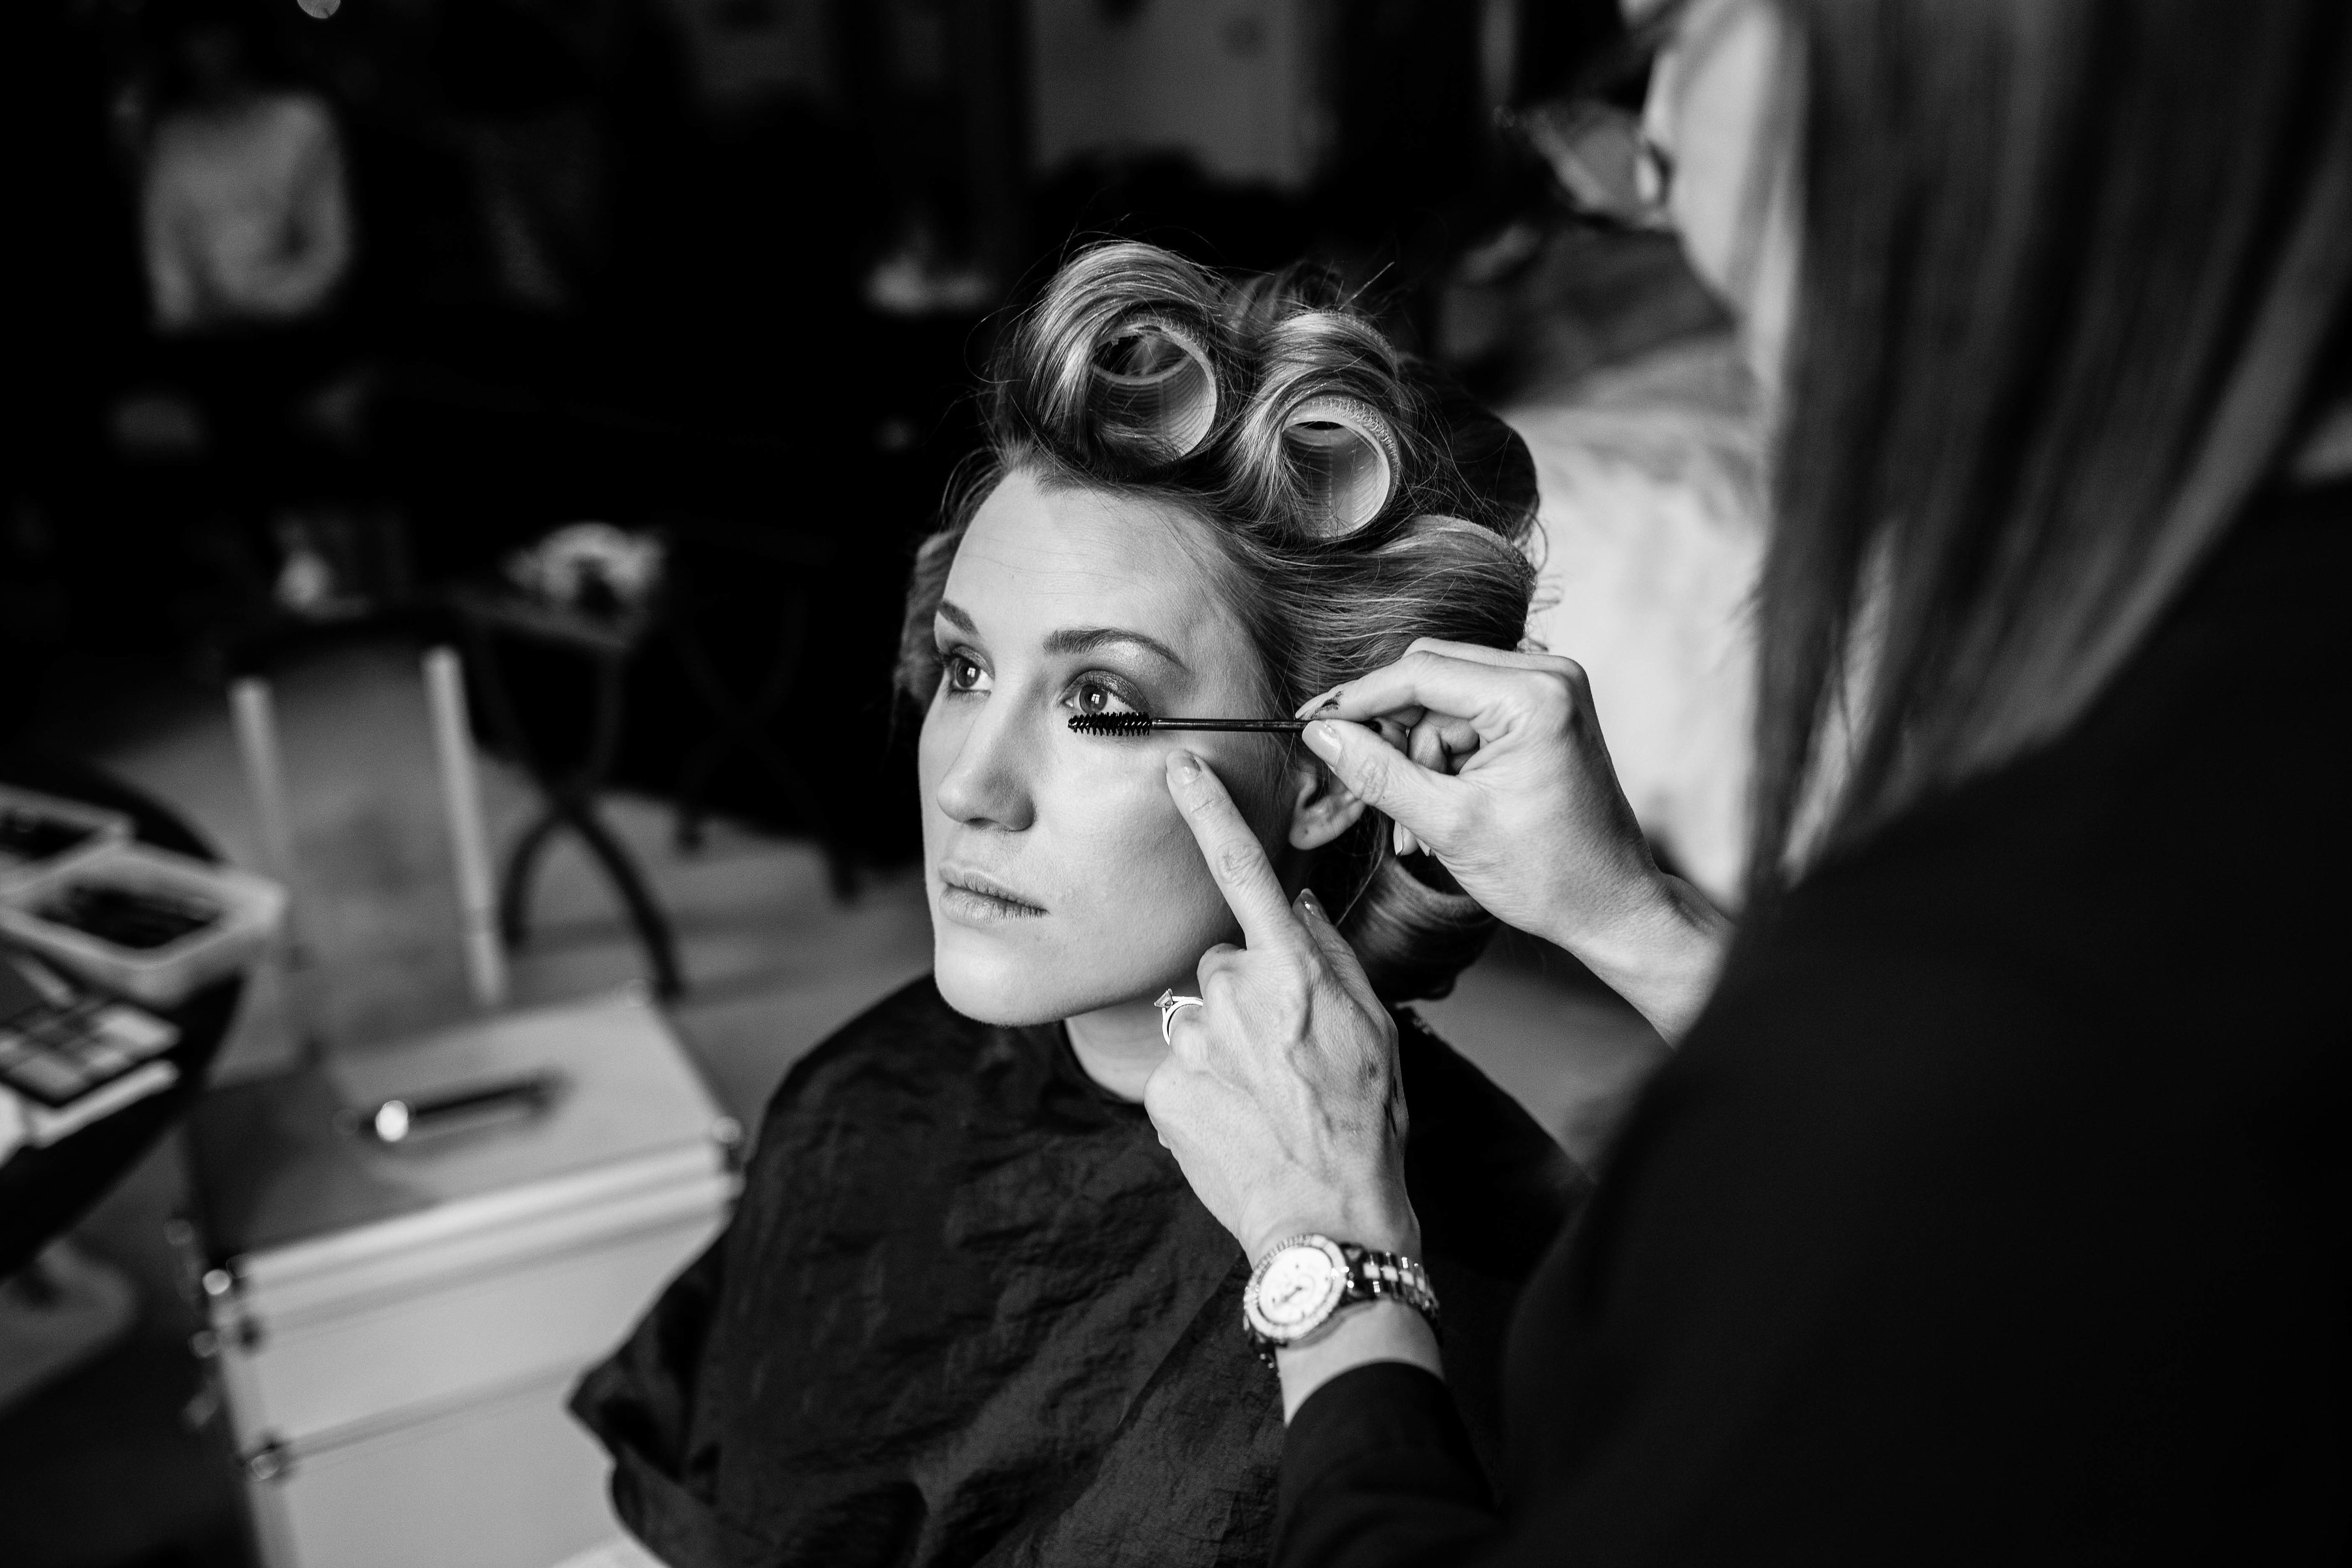 Make up by Catherine Batour